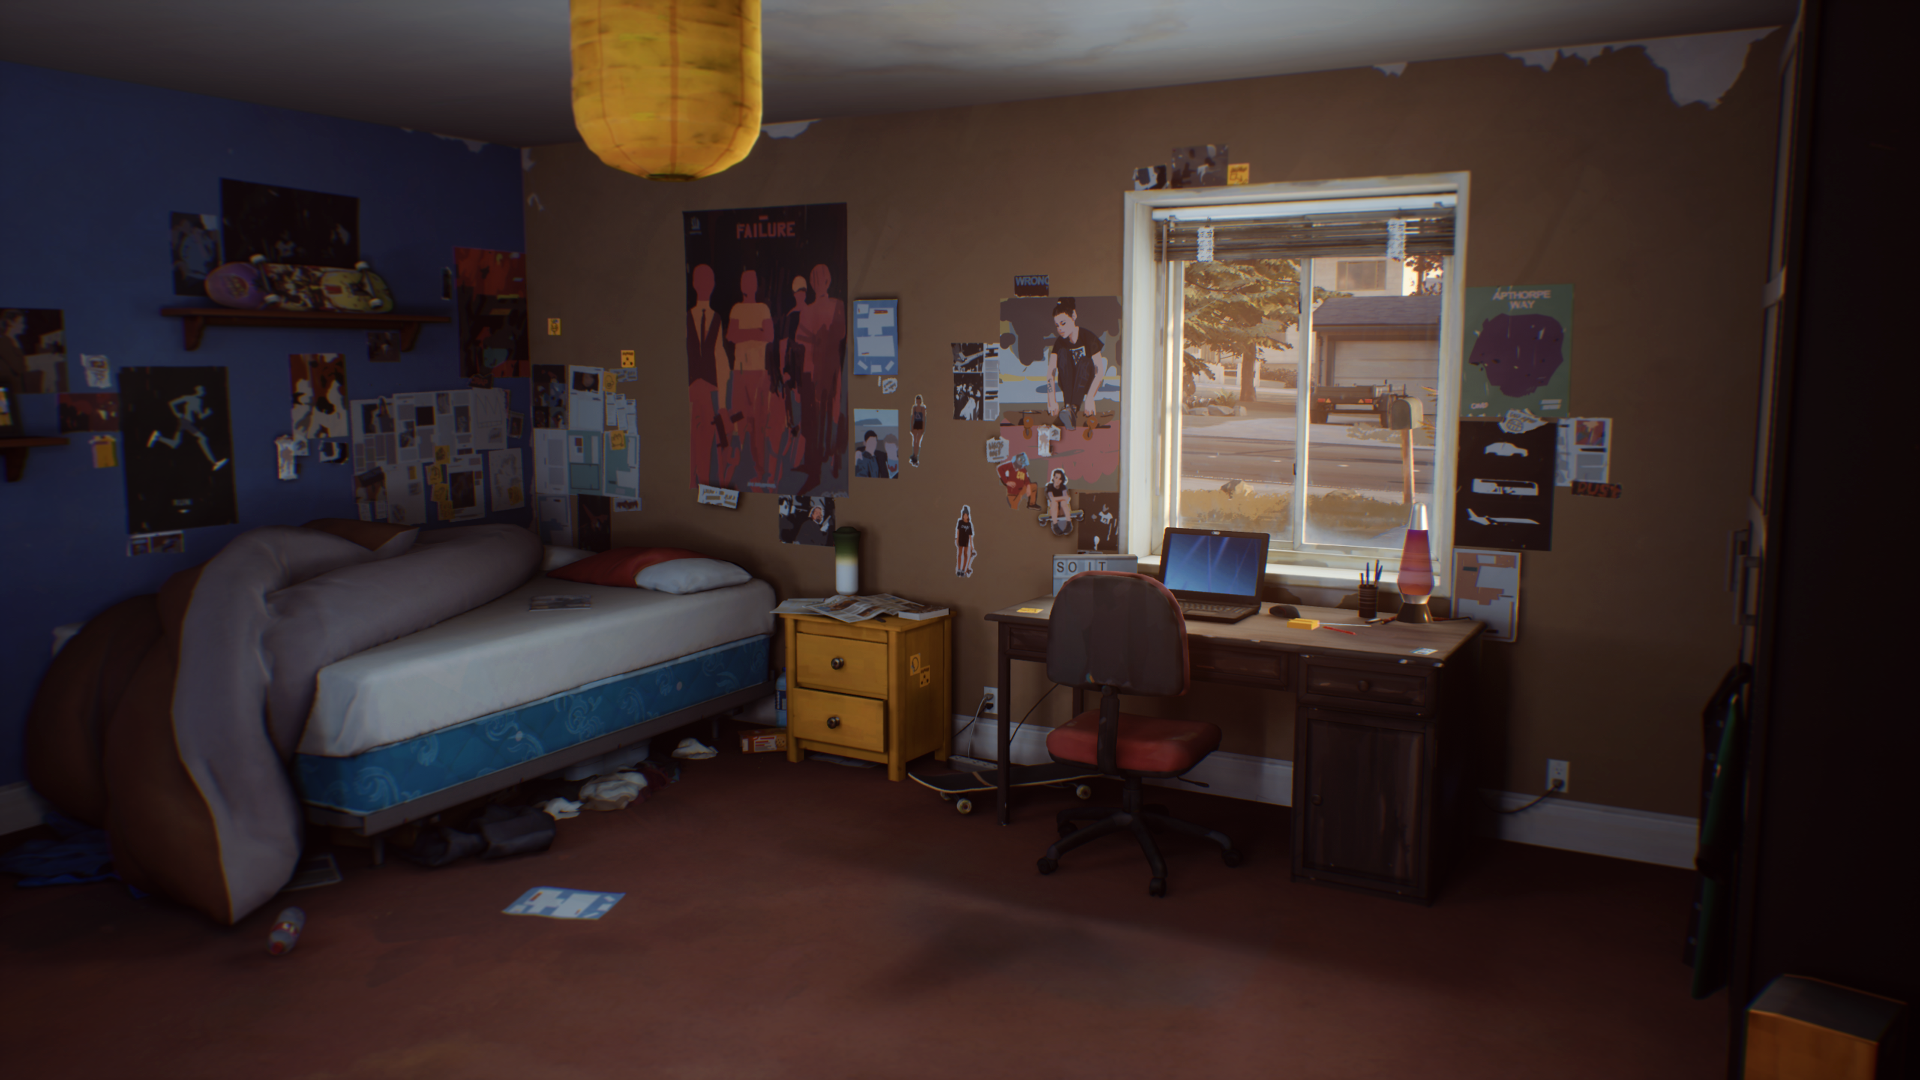 Sean's Room (main image)